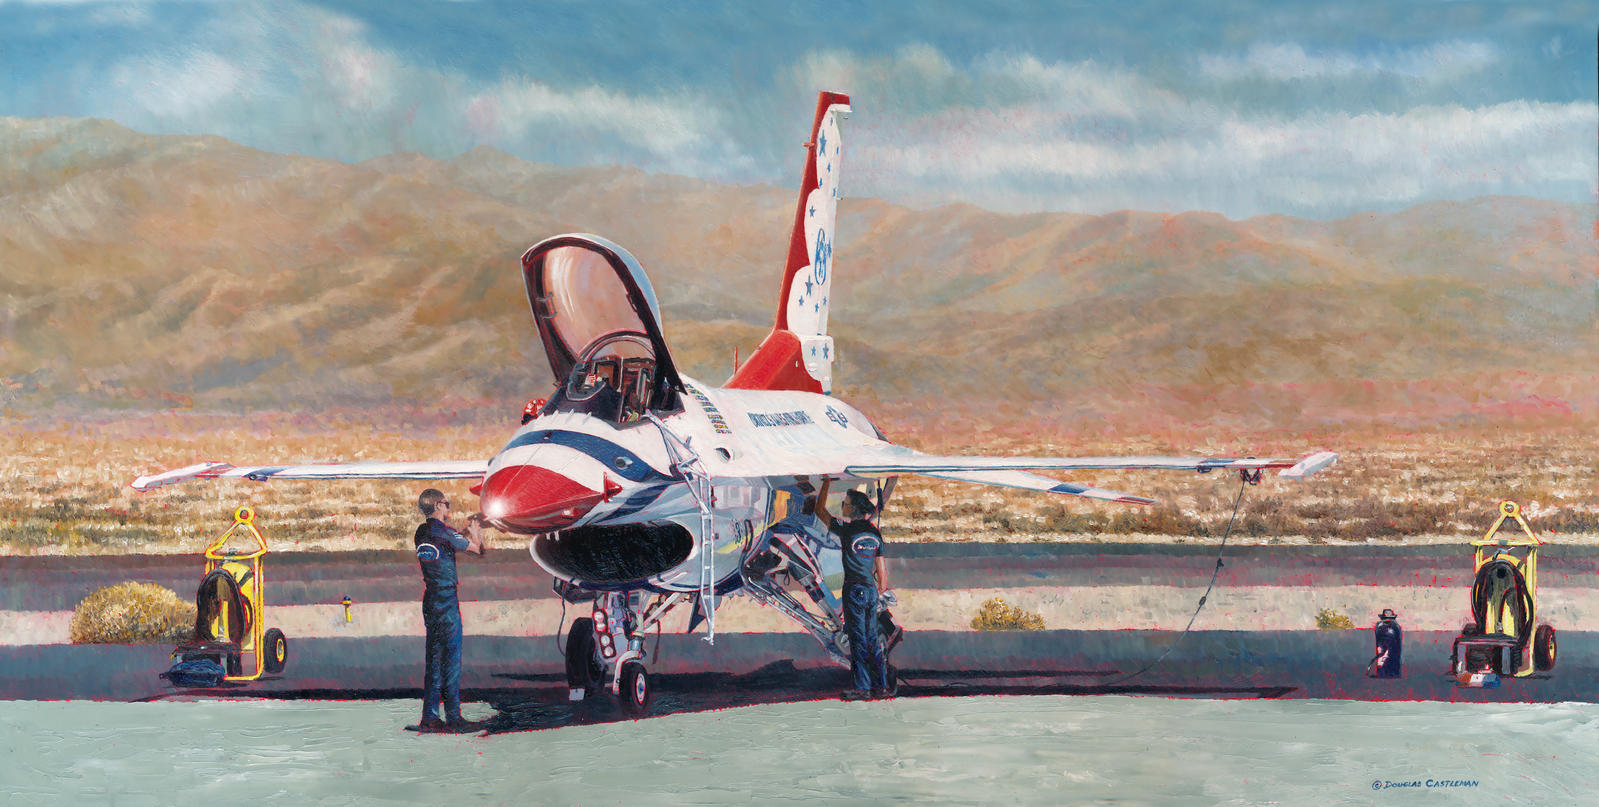 Thunderbird Maintenance by DouglasCastleman